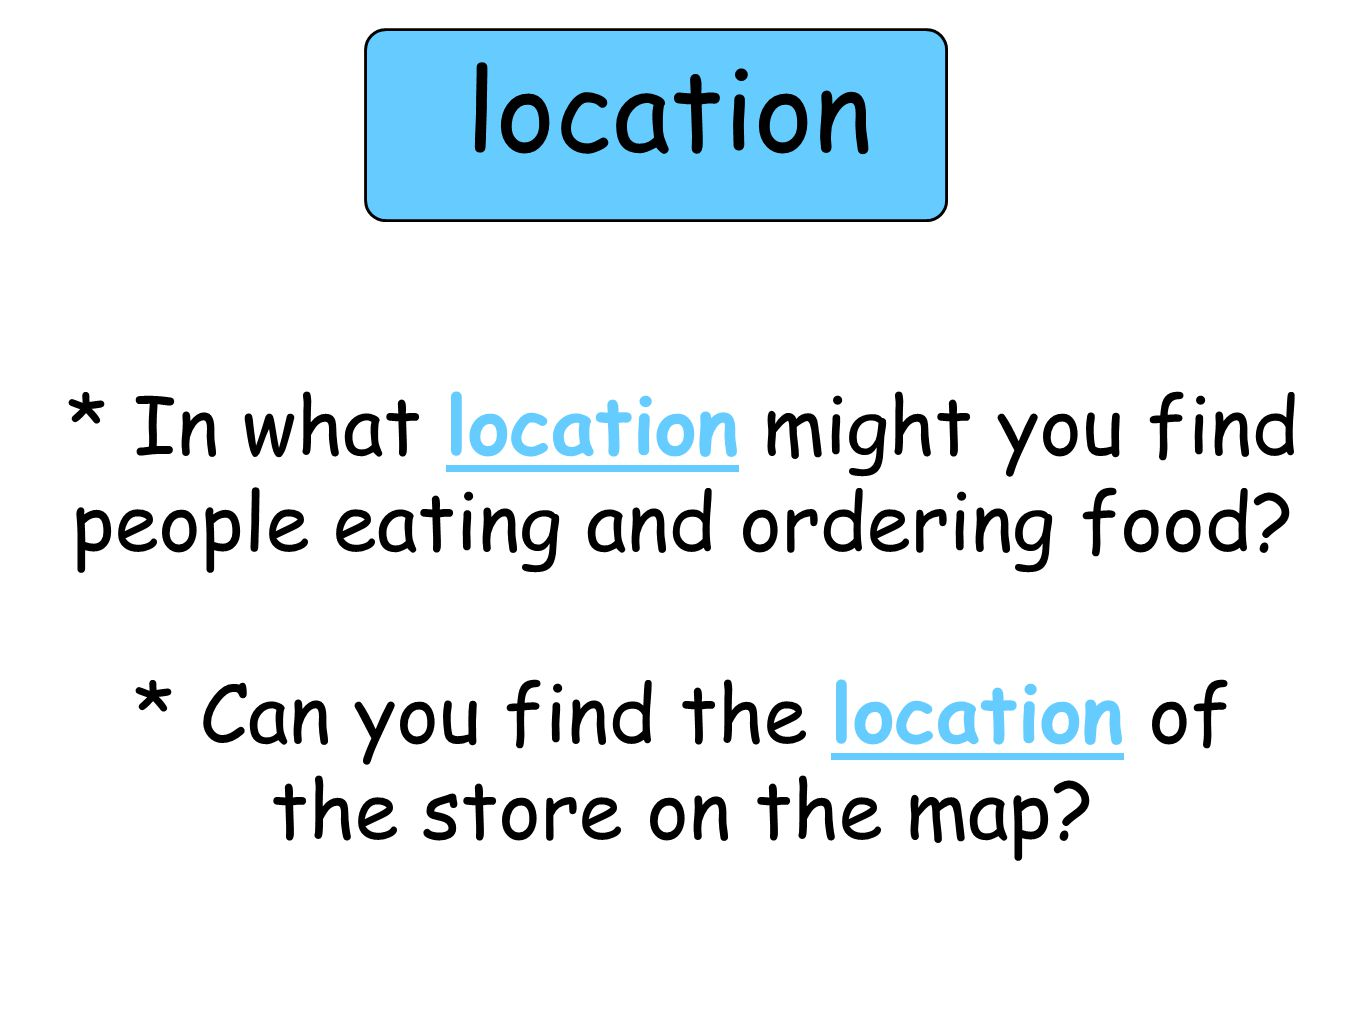 * In what location might you find people eating and ordering food? * Can you find the location of the store on the map? location